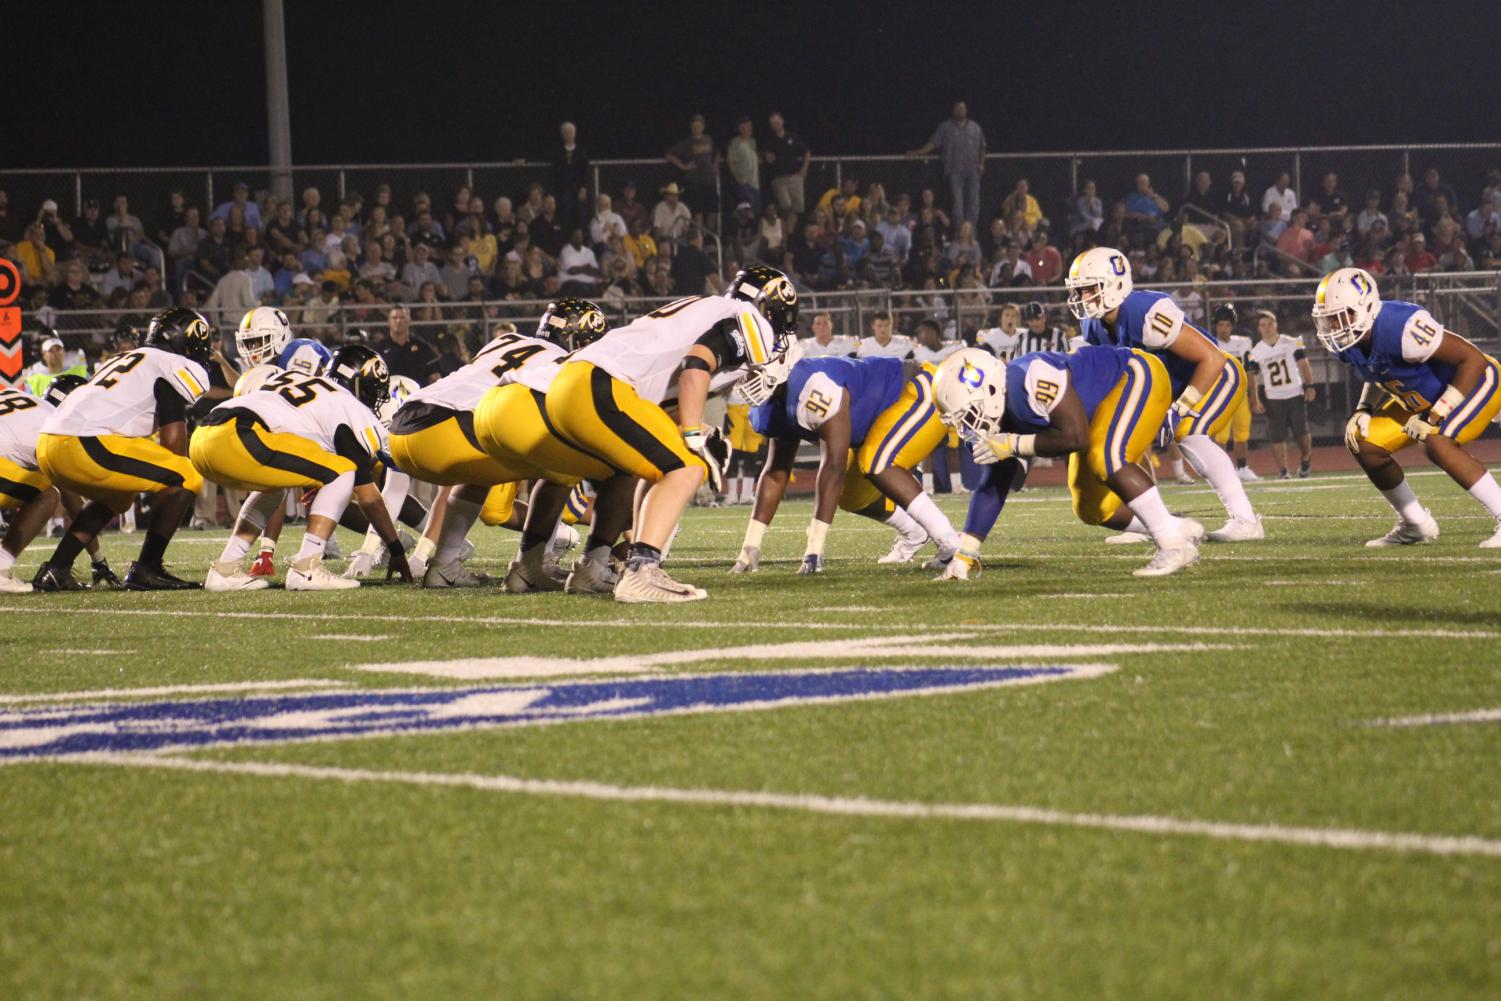 The Charger offense lines up against the Pontotoc defense during last year's meet-up. The Chargers beat the Warriors last year at home with a score of 17-0.